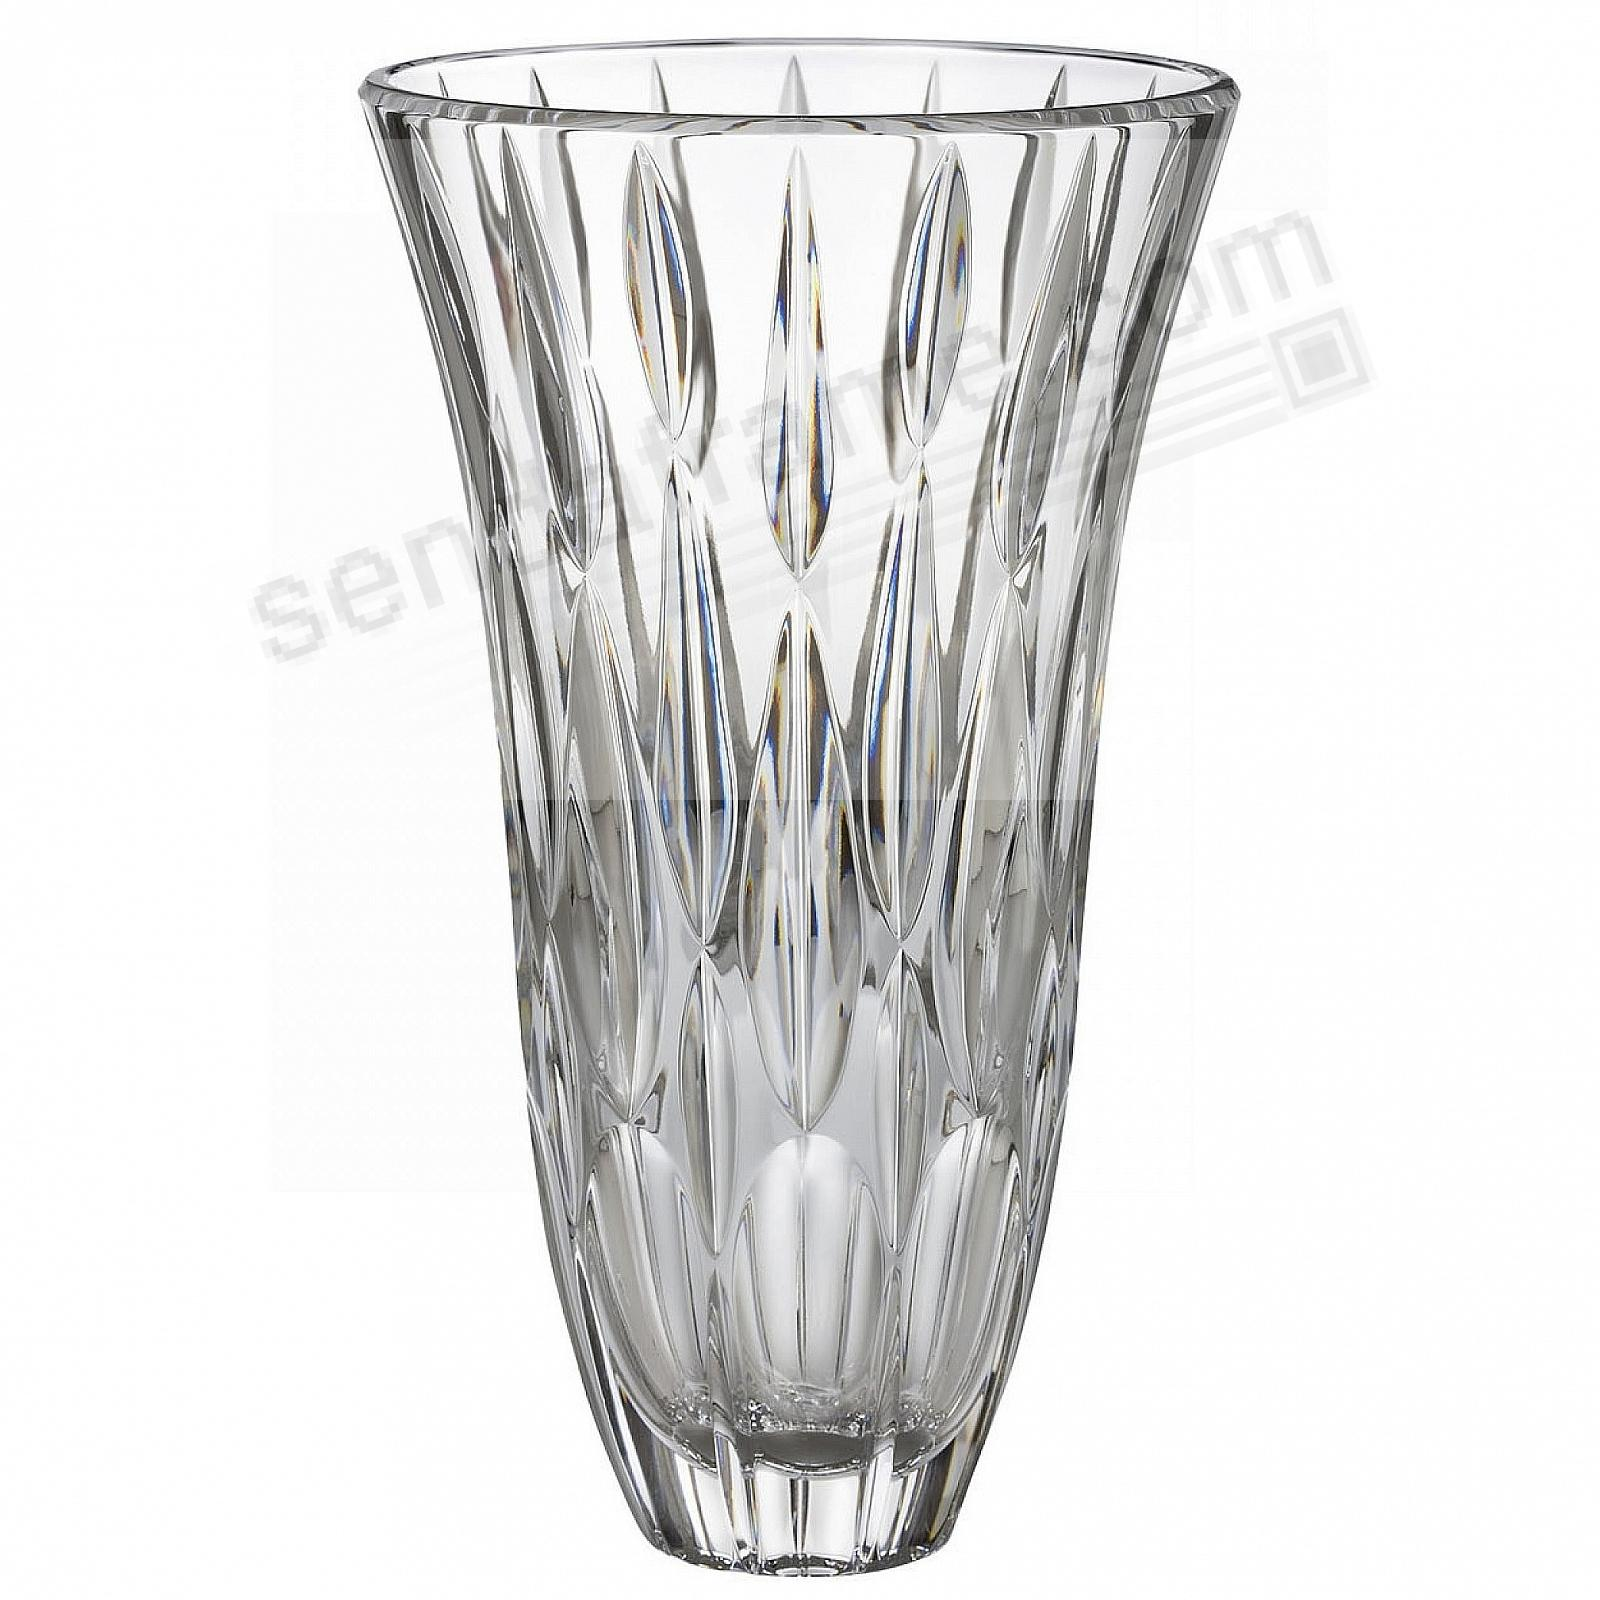 The Original RAINFALL 11inch Crystal Marquis by Waterford® Vase